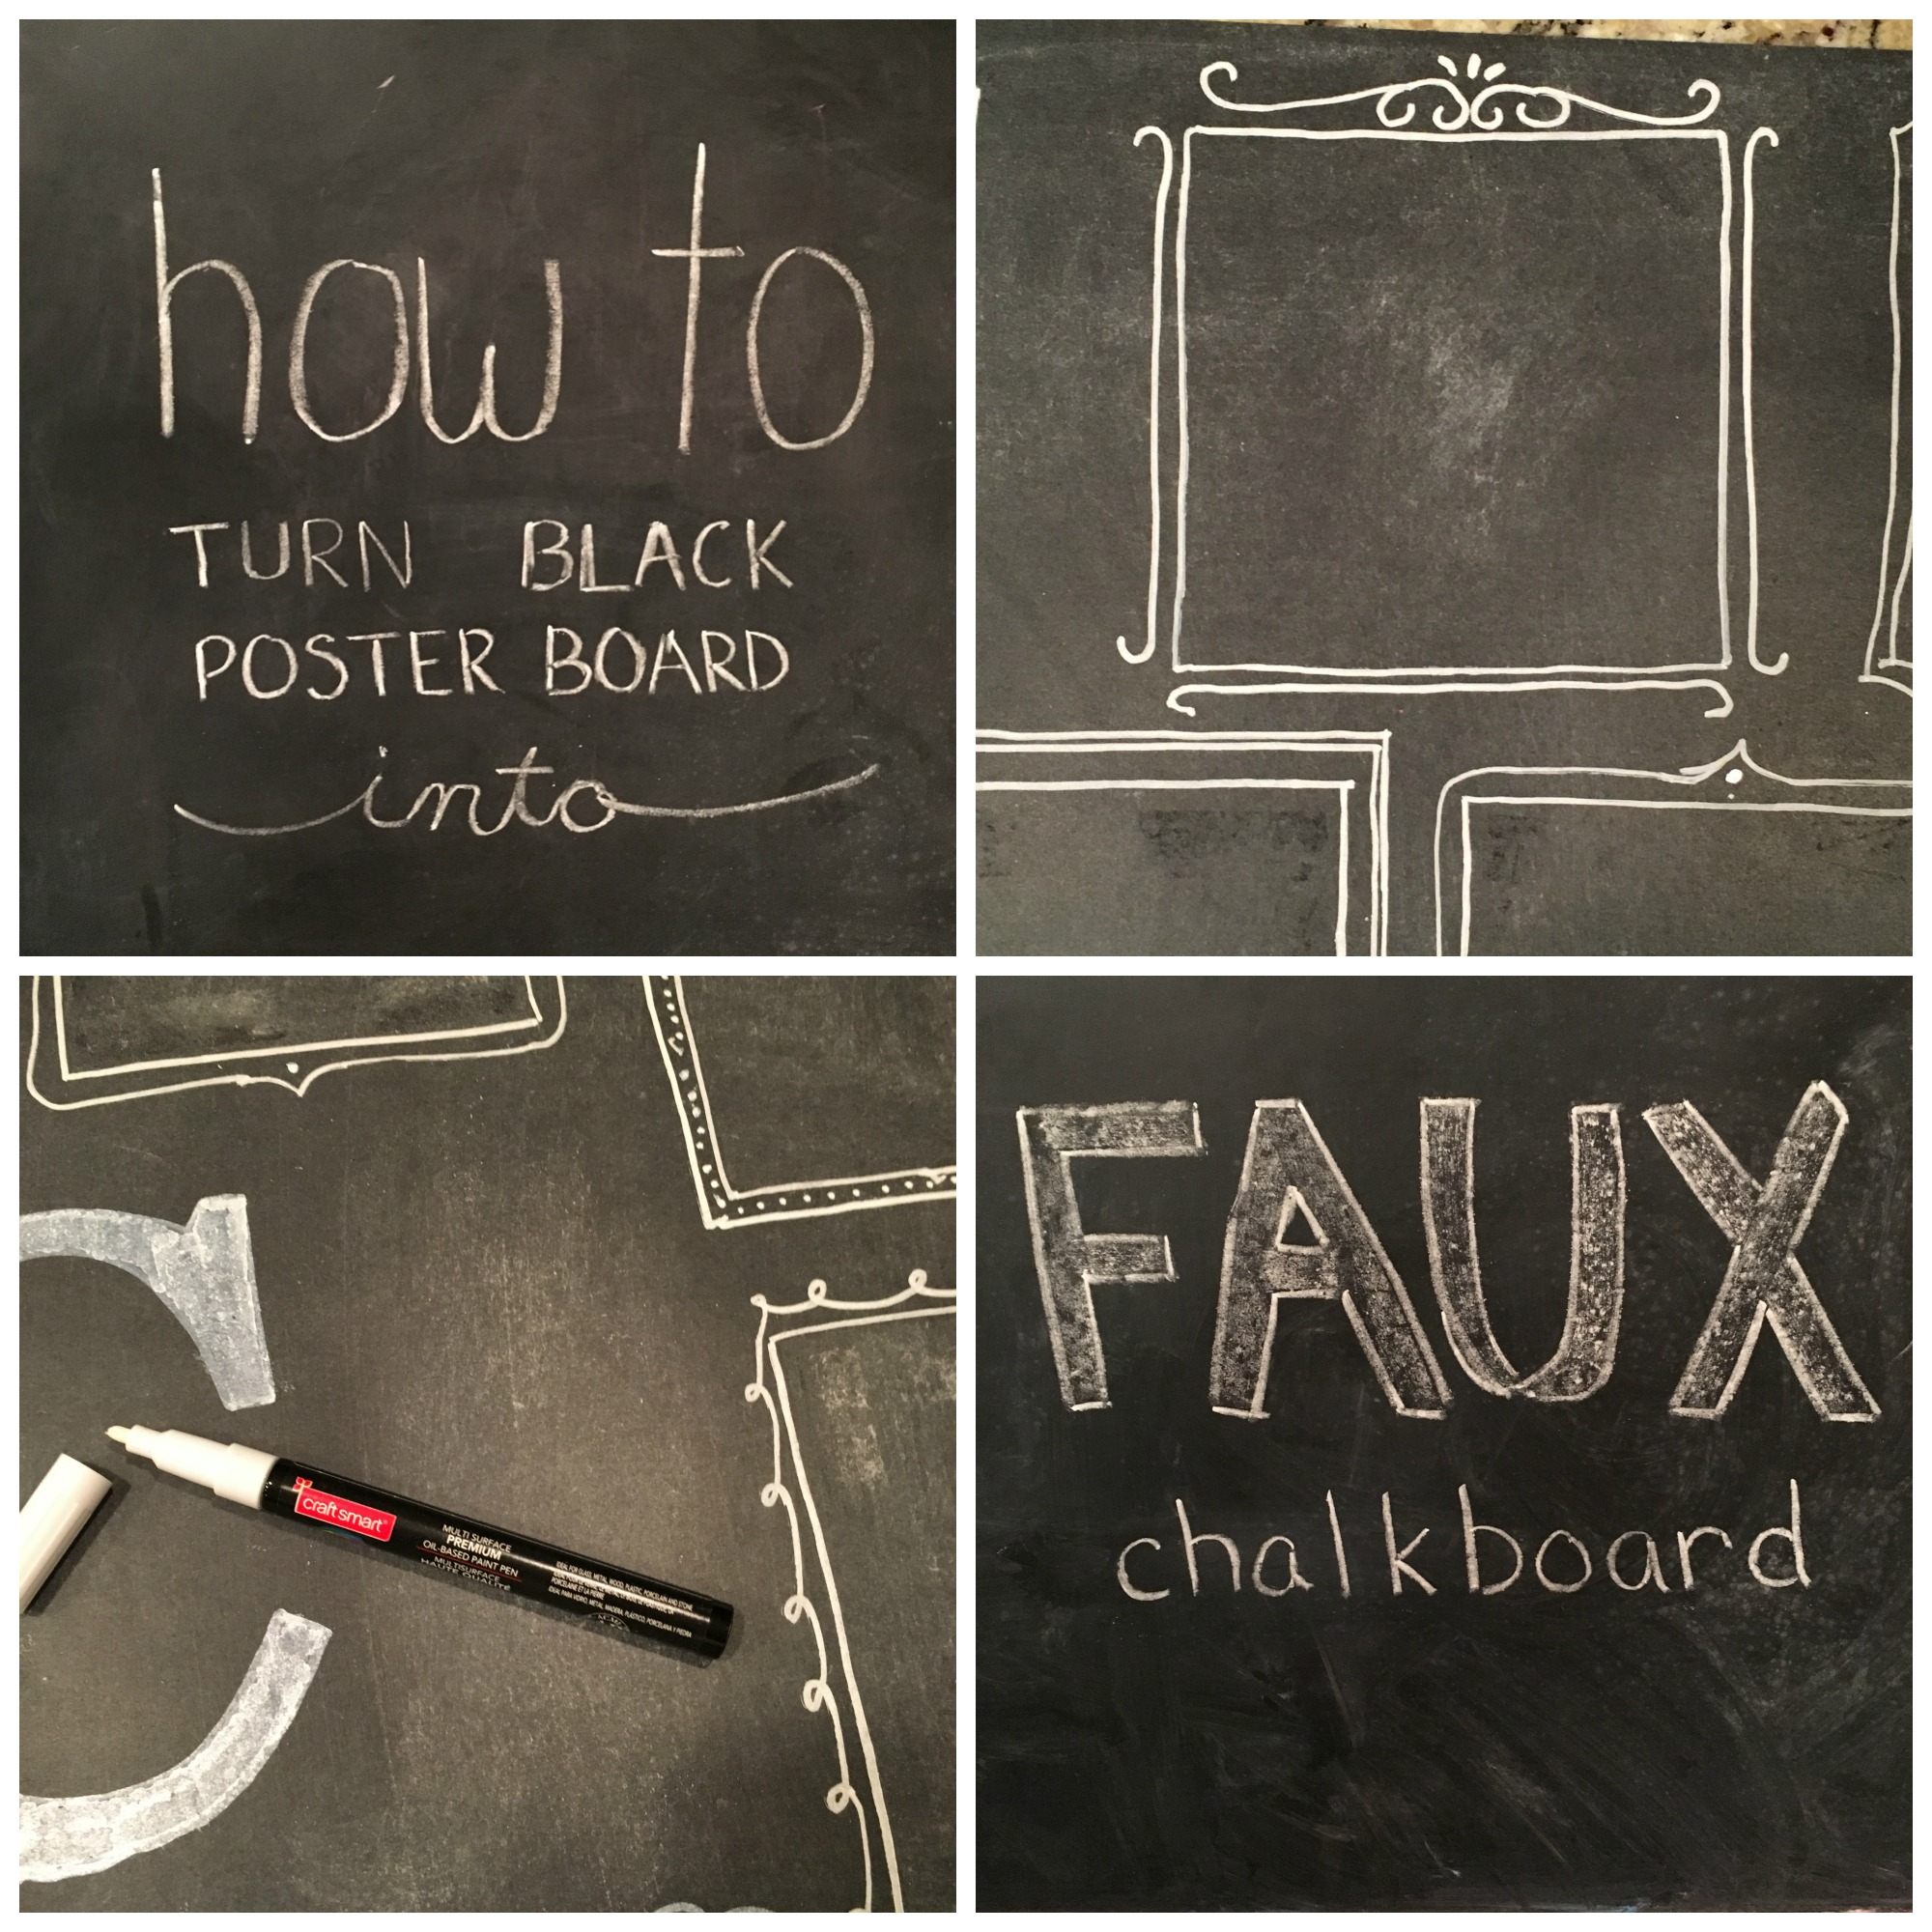 How to Turn Black Poster Board into a Faux Chalkboard - From The ...